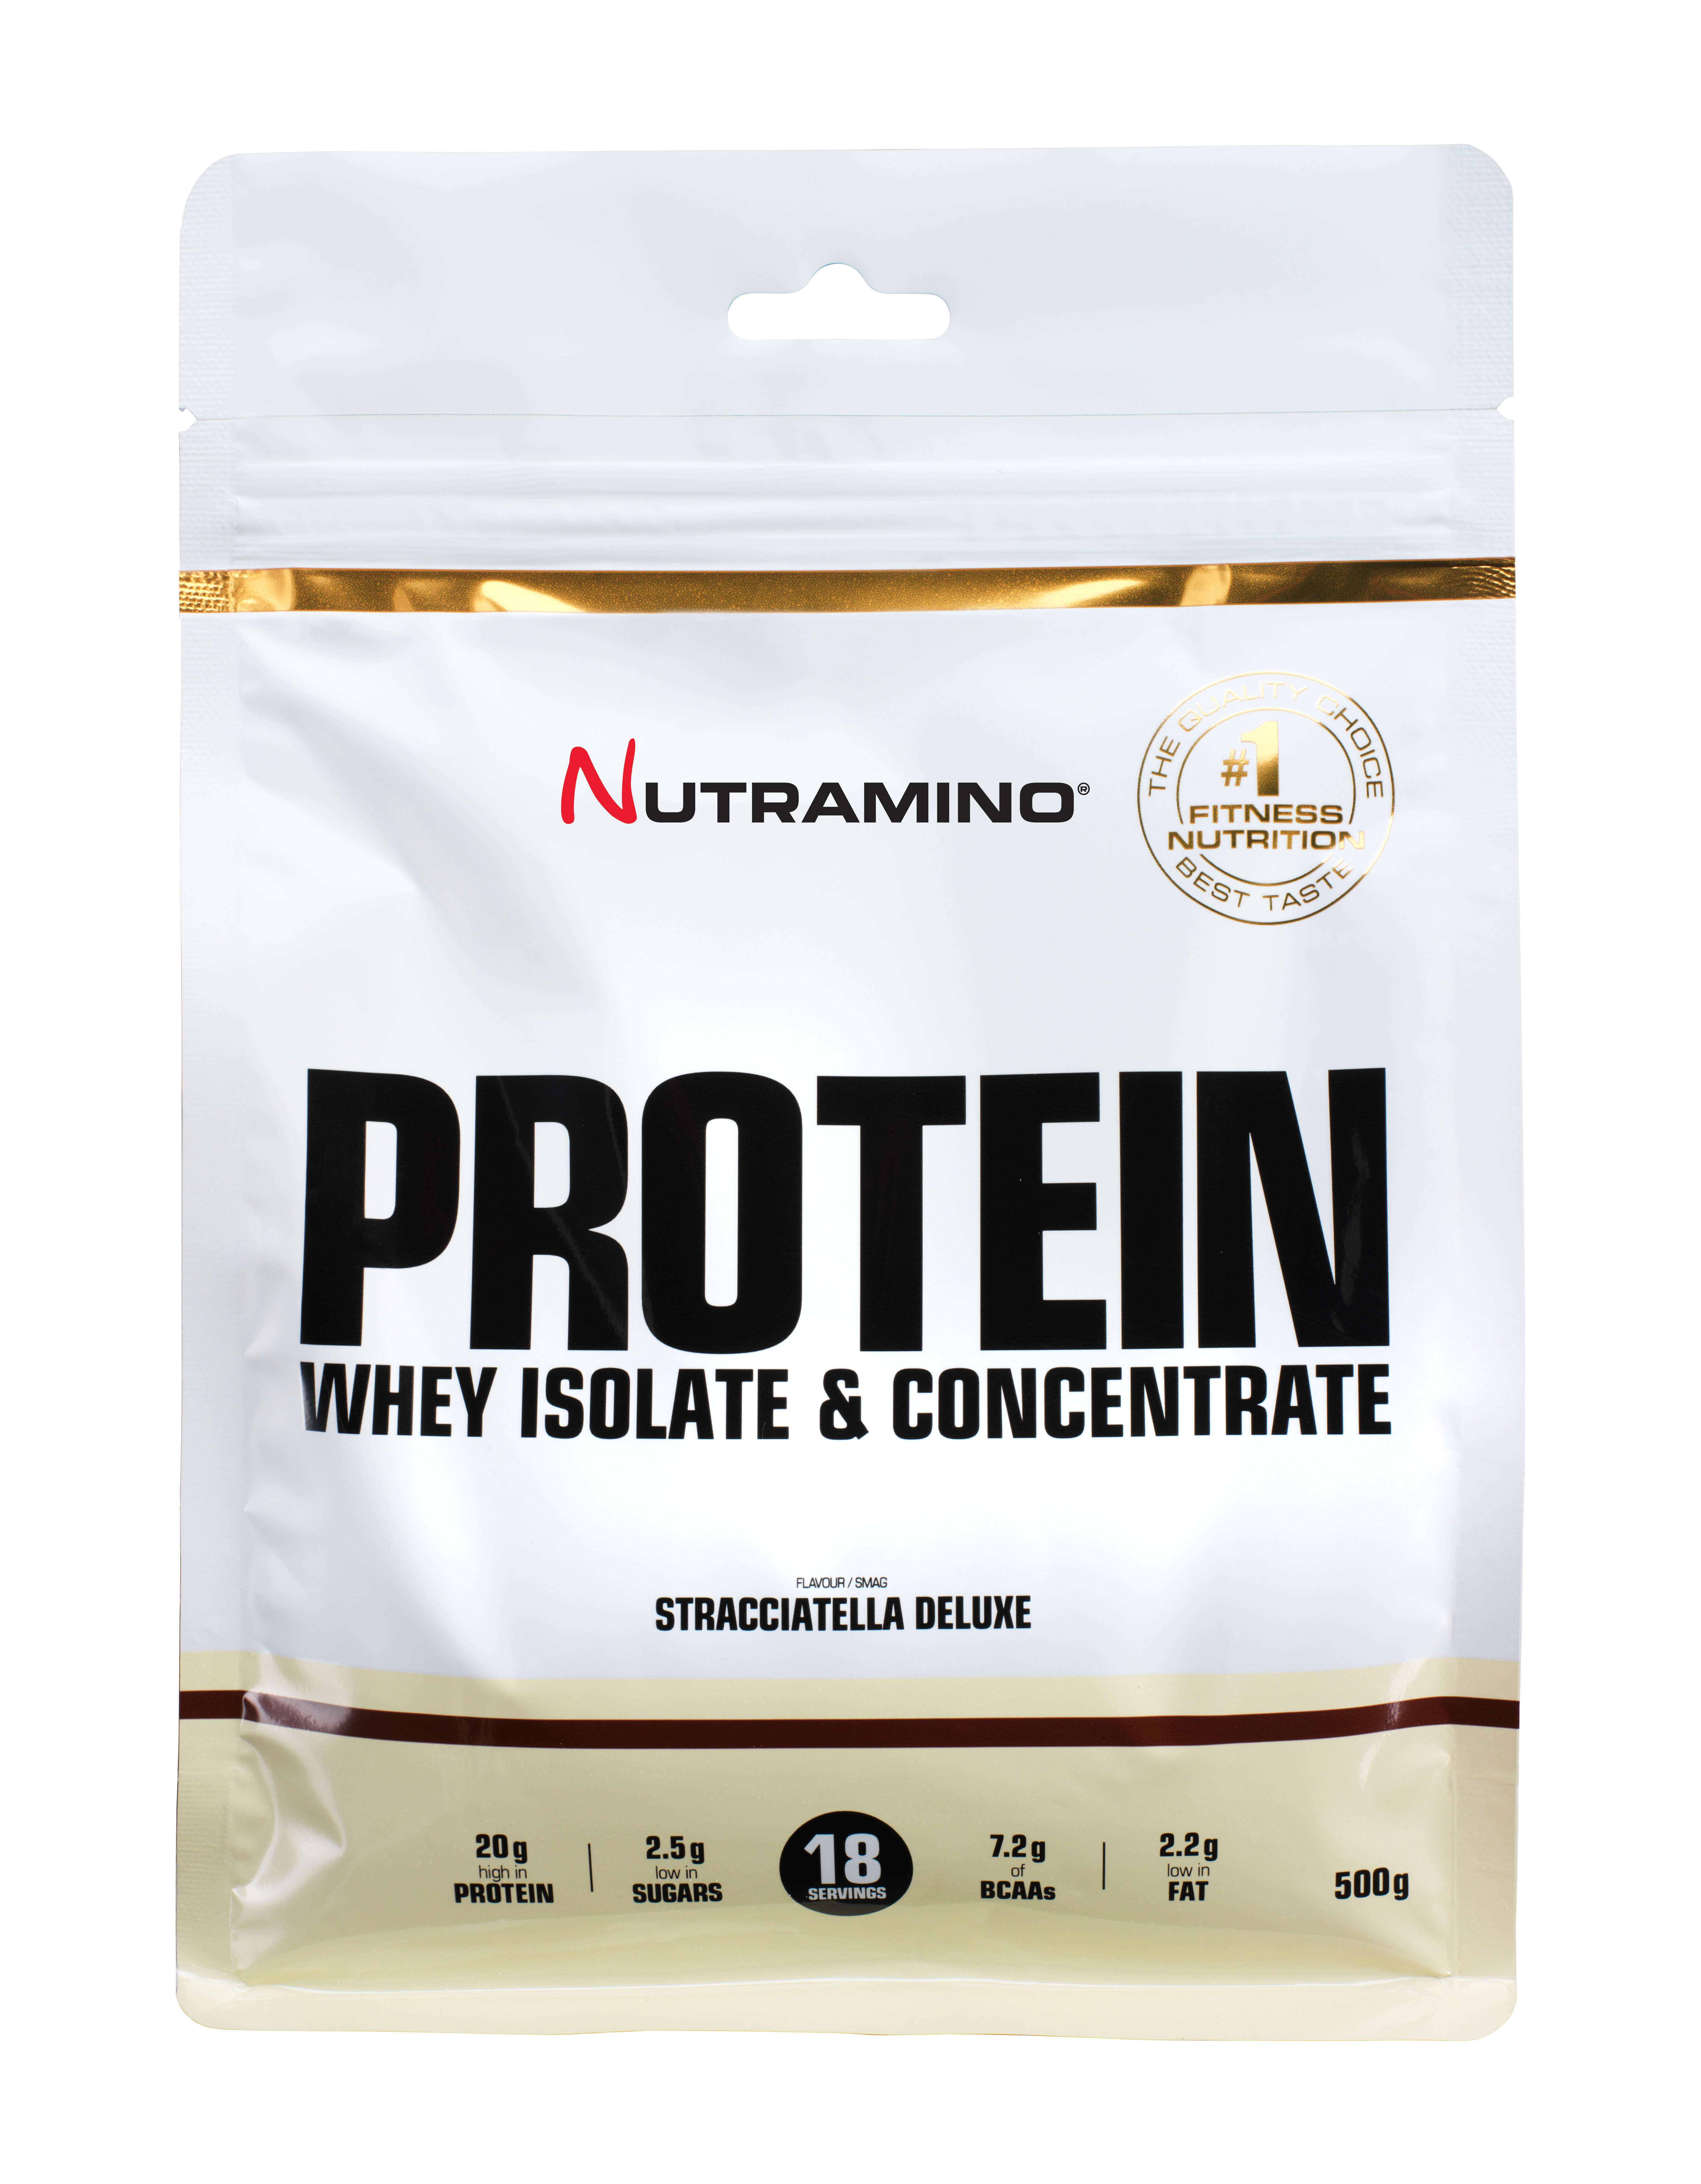 fit & smart protein by charlotte perrelli